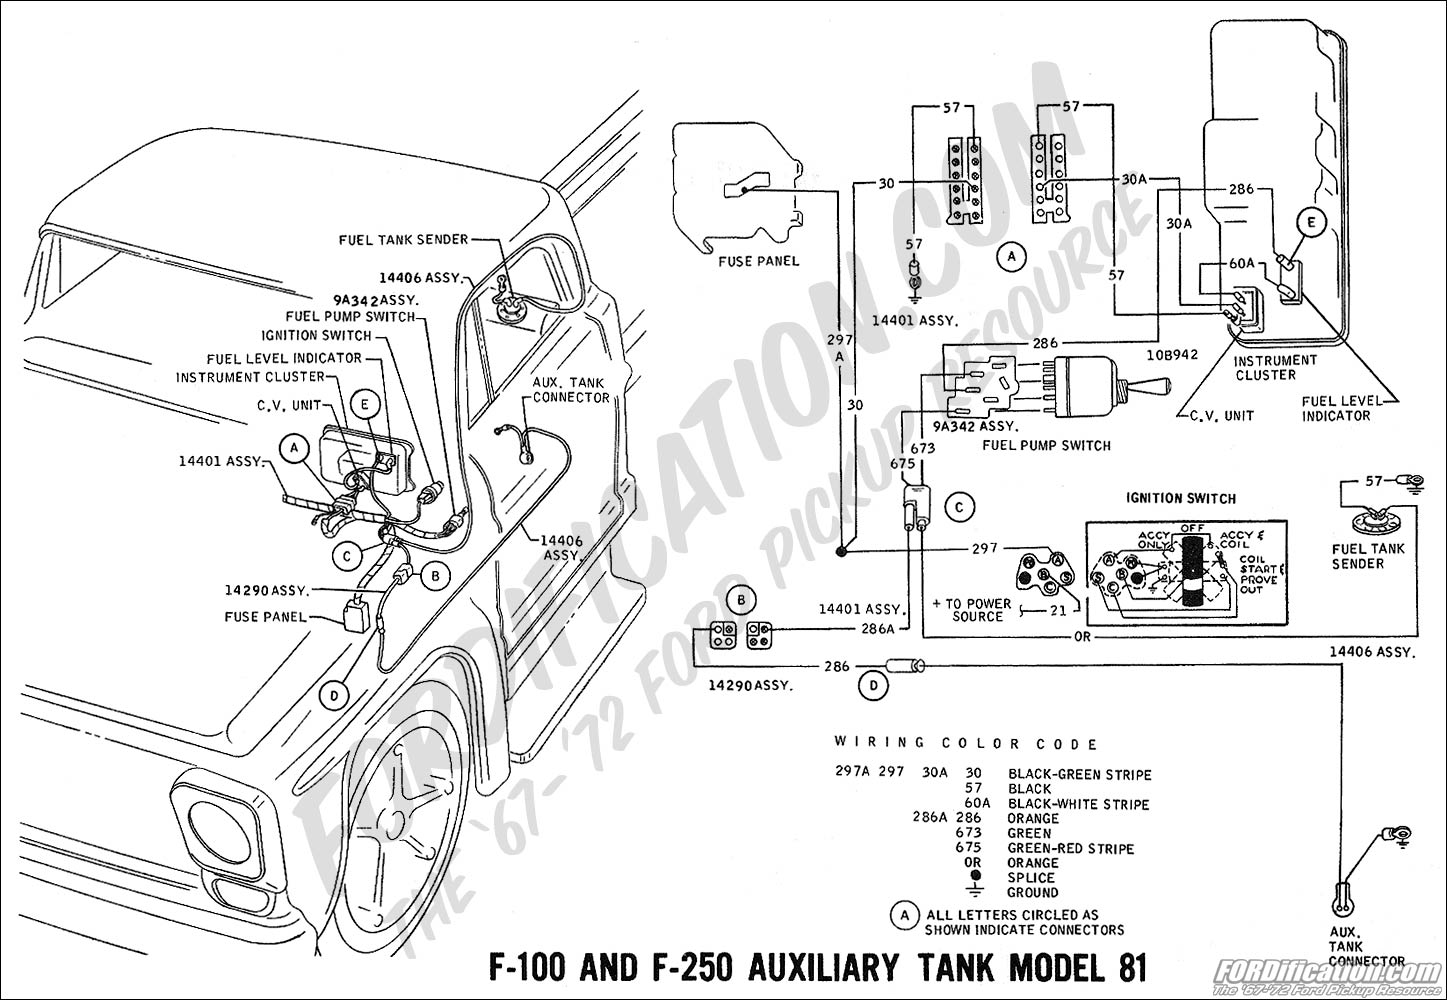 72 ford f100 dash wiring diagram tachometer install fox body fuse box schematic 1965 online car 1972